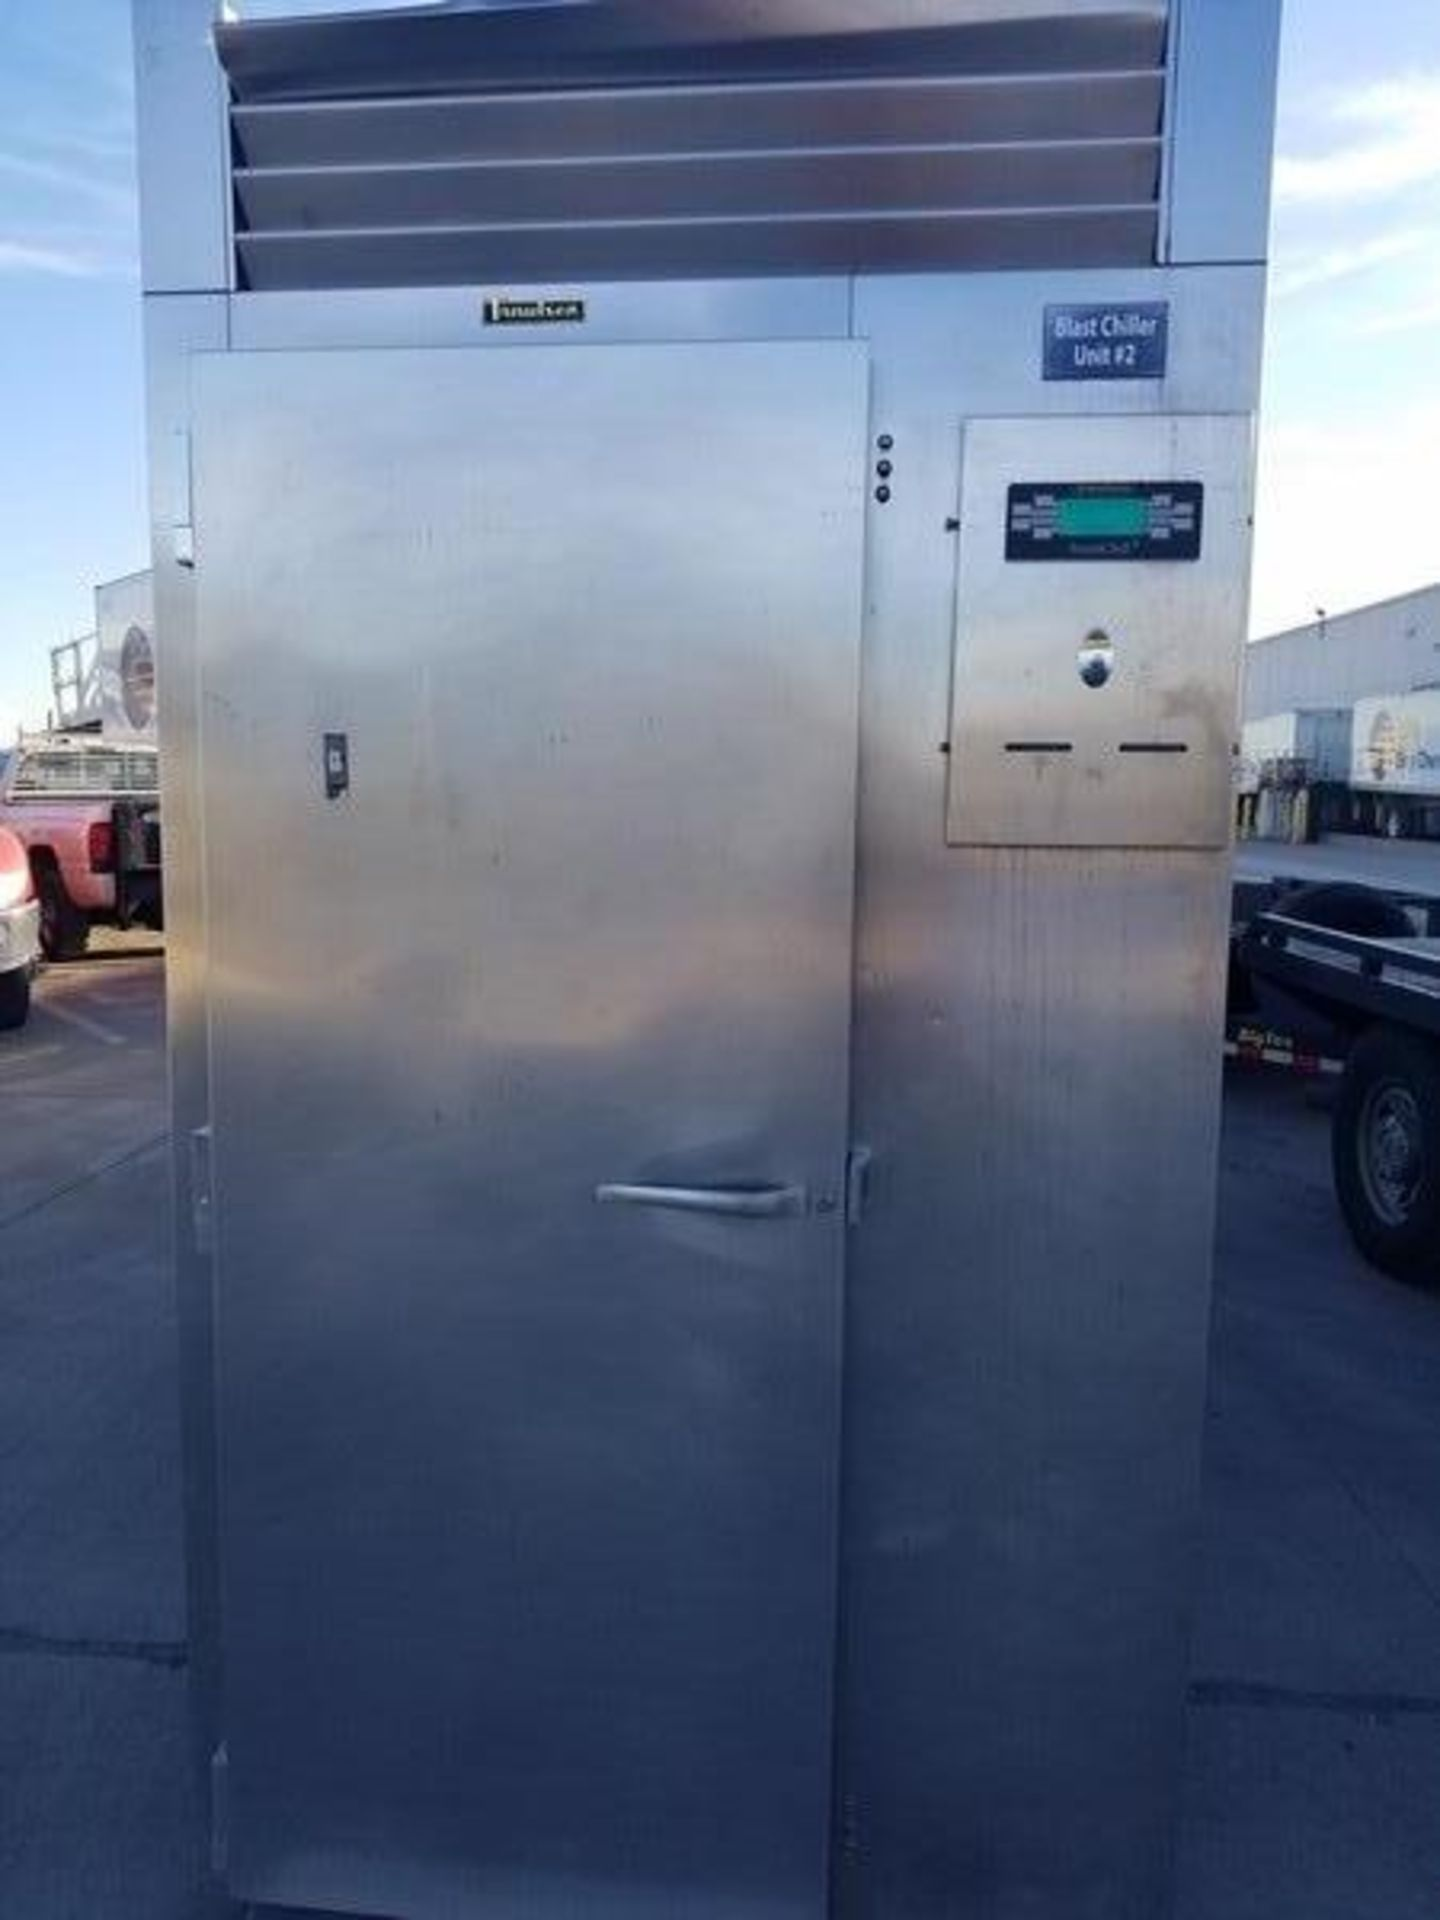 Lot 38 - Traulsen S/S Single Rack Blast Chiller, M/N RBC200-28, S/N T157174B11, Refrigerant 404A, Design